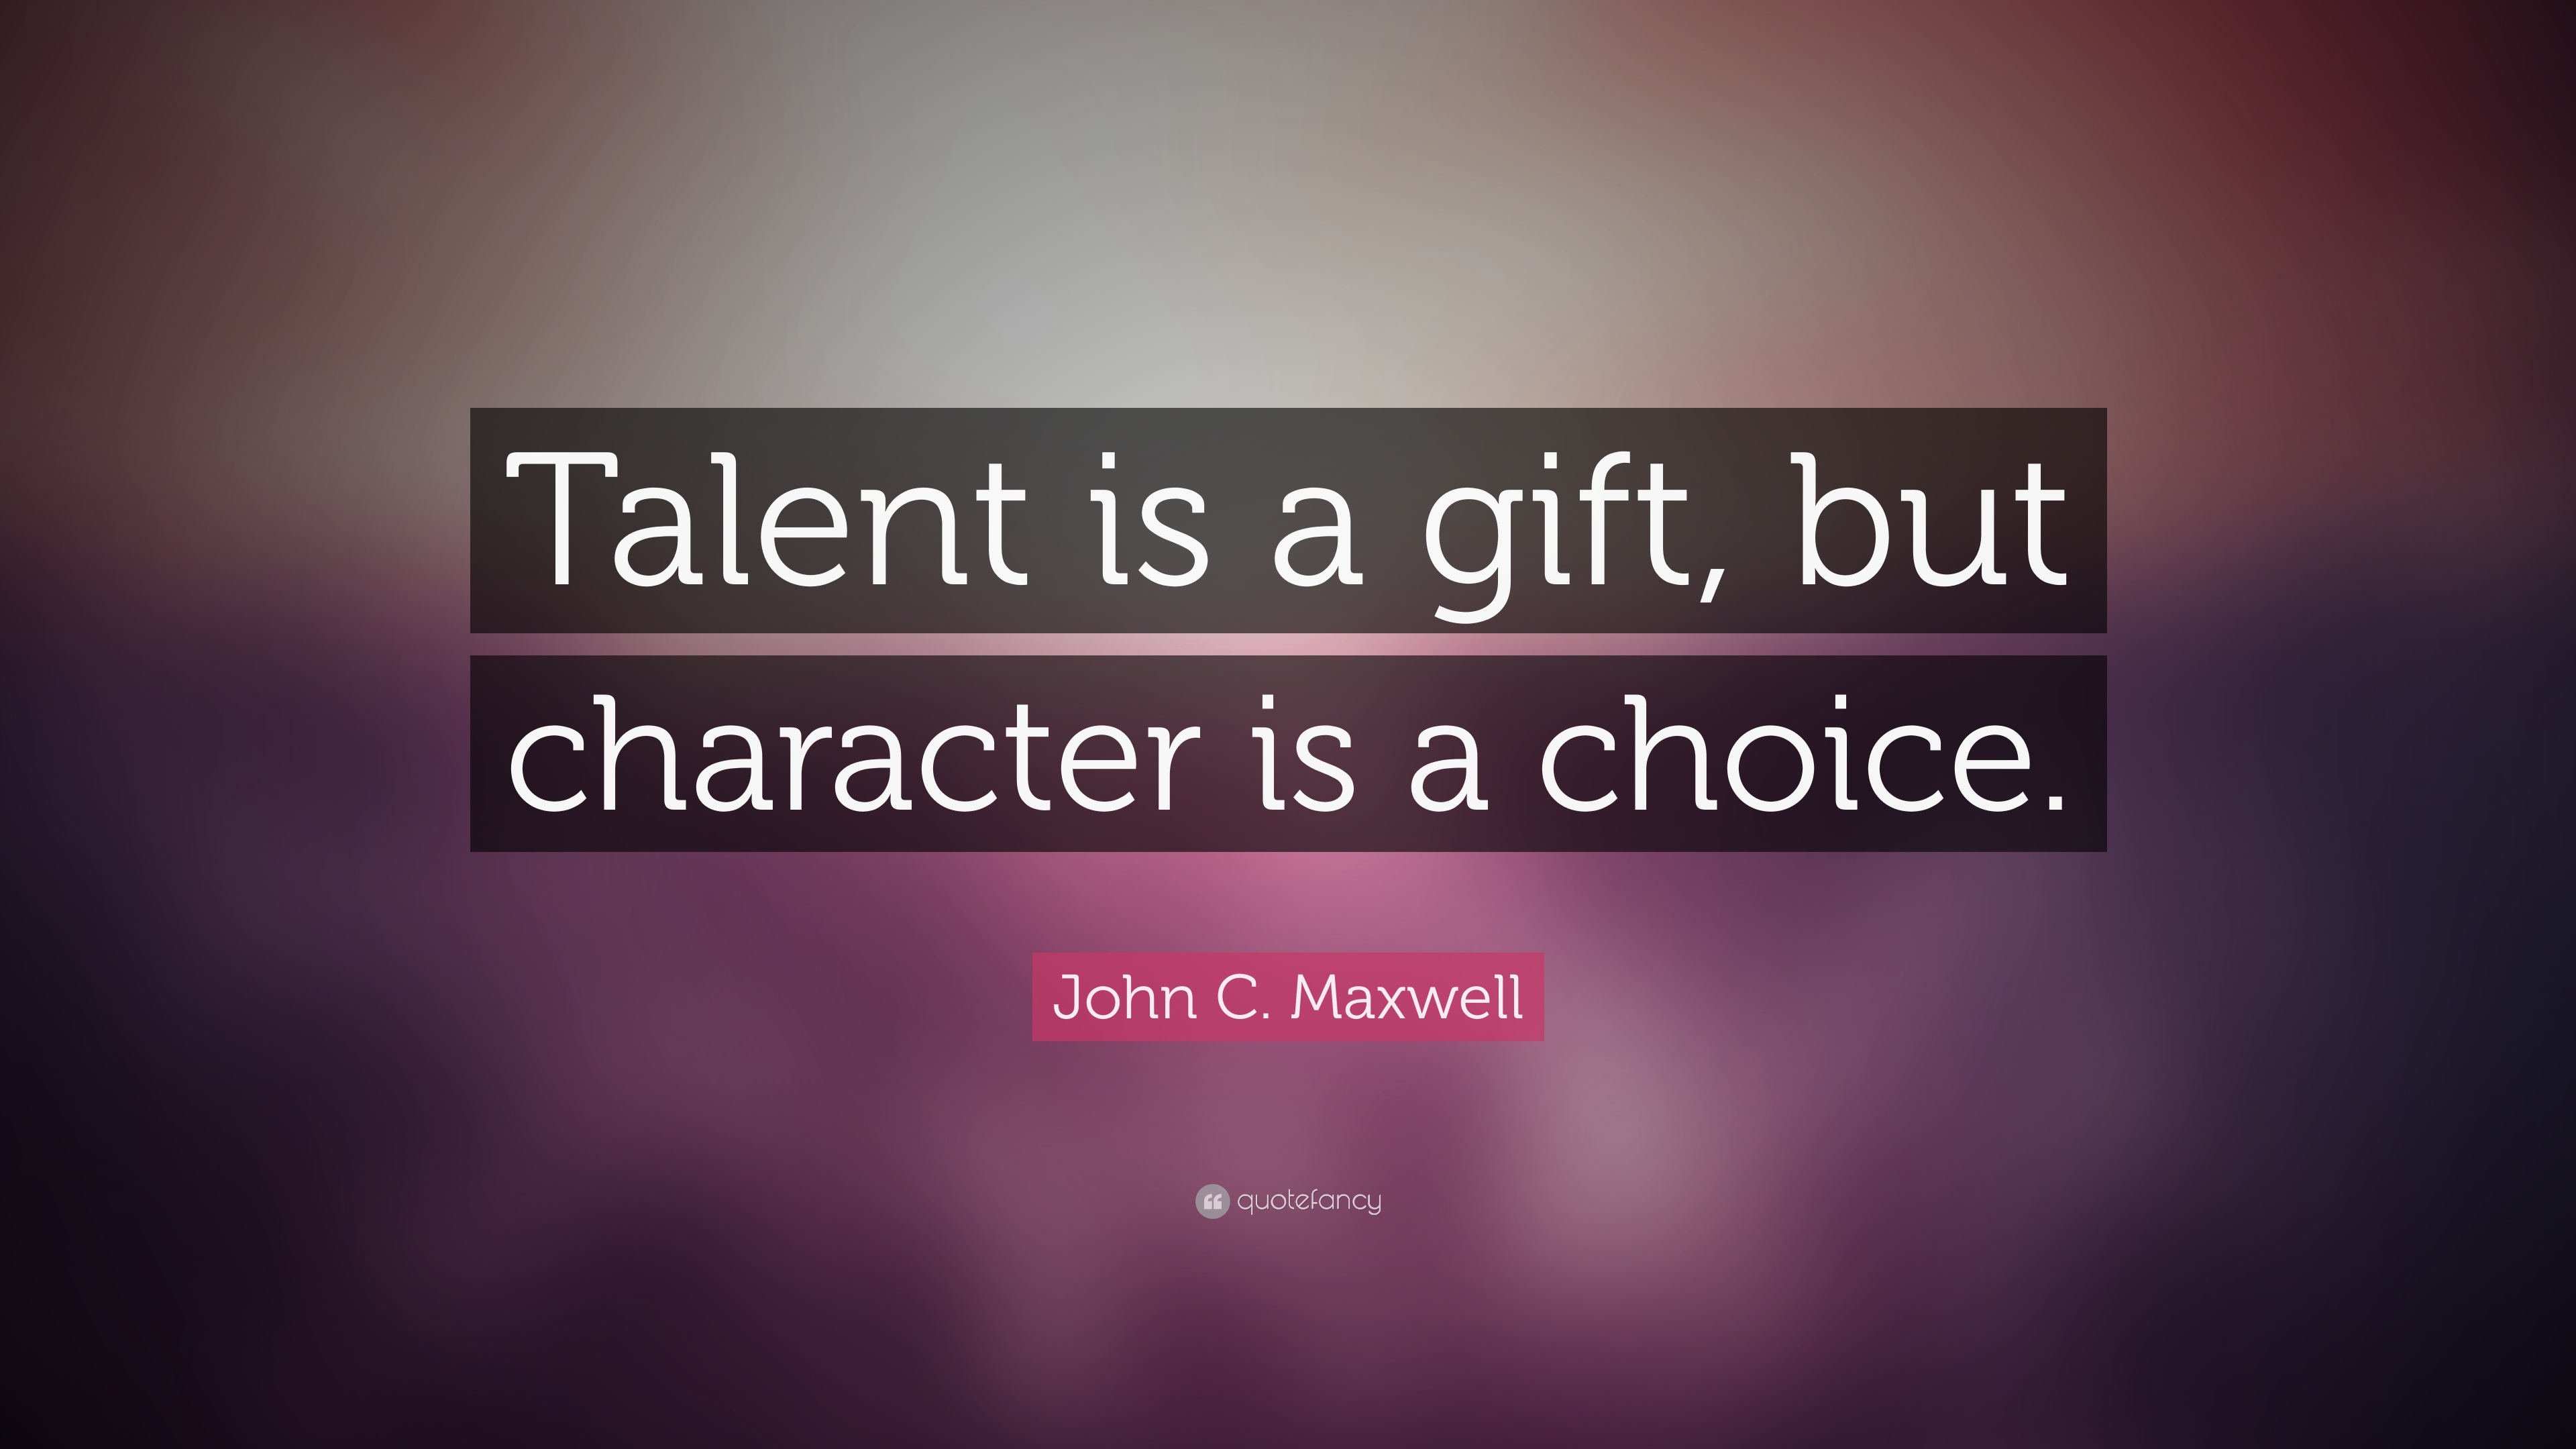 John c maxwell quote talent is a gift but character is a